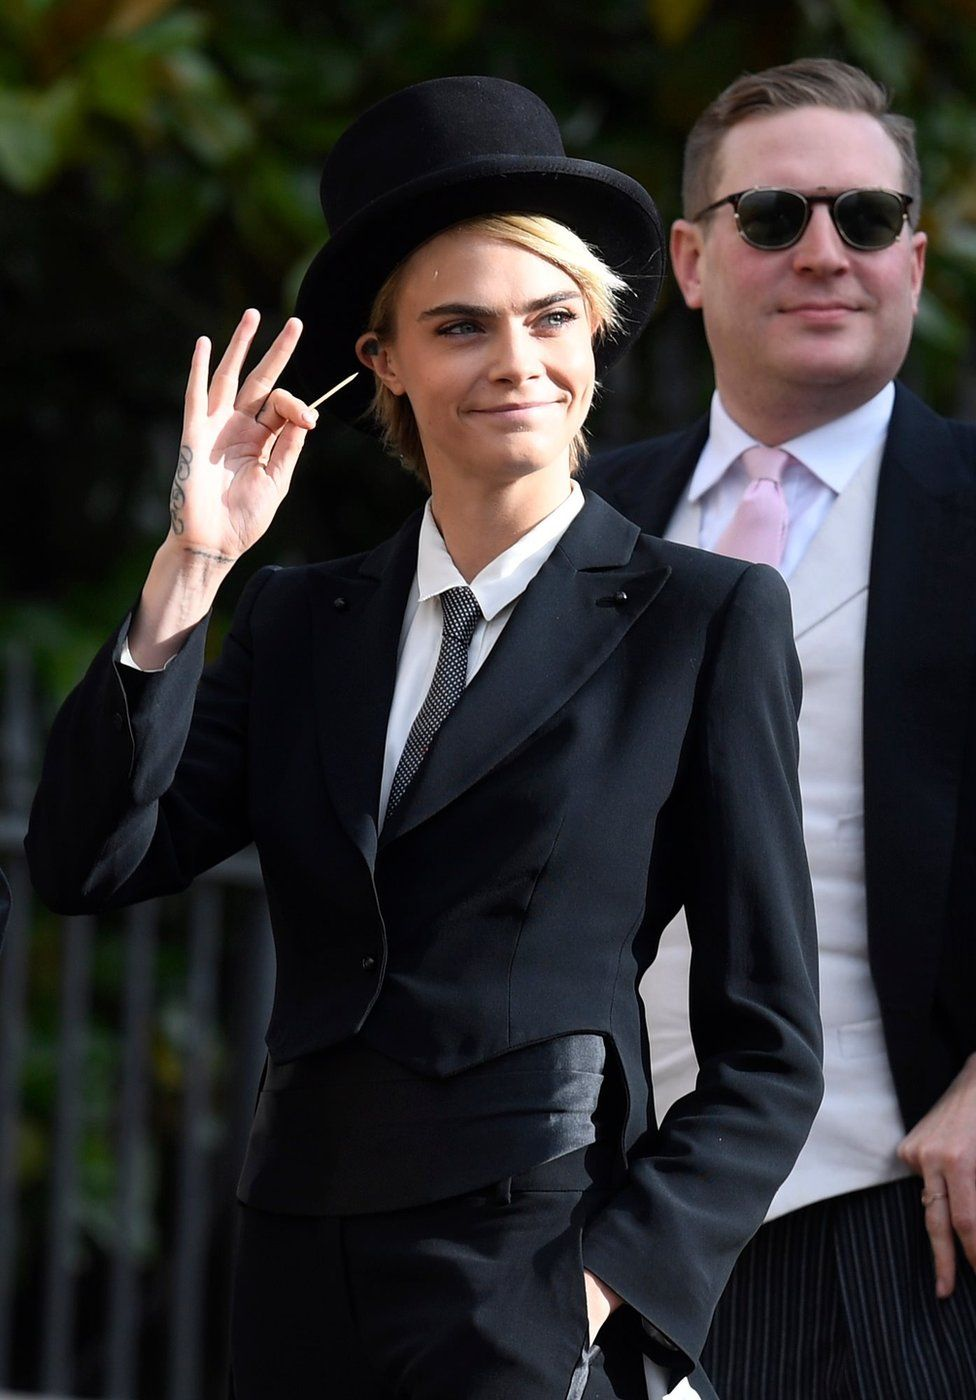 British model and actress Cara Delevingne arrives for the royal wedding ceremony